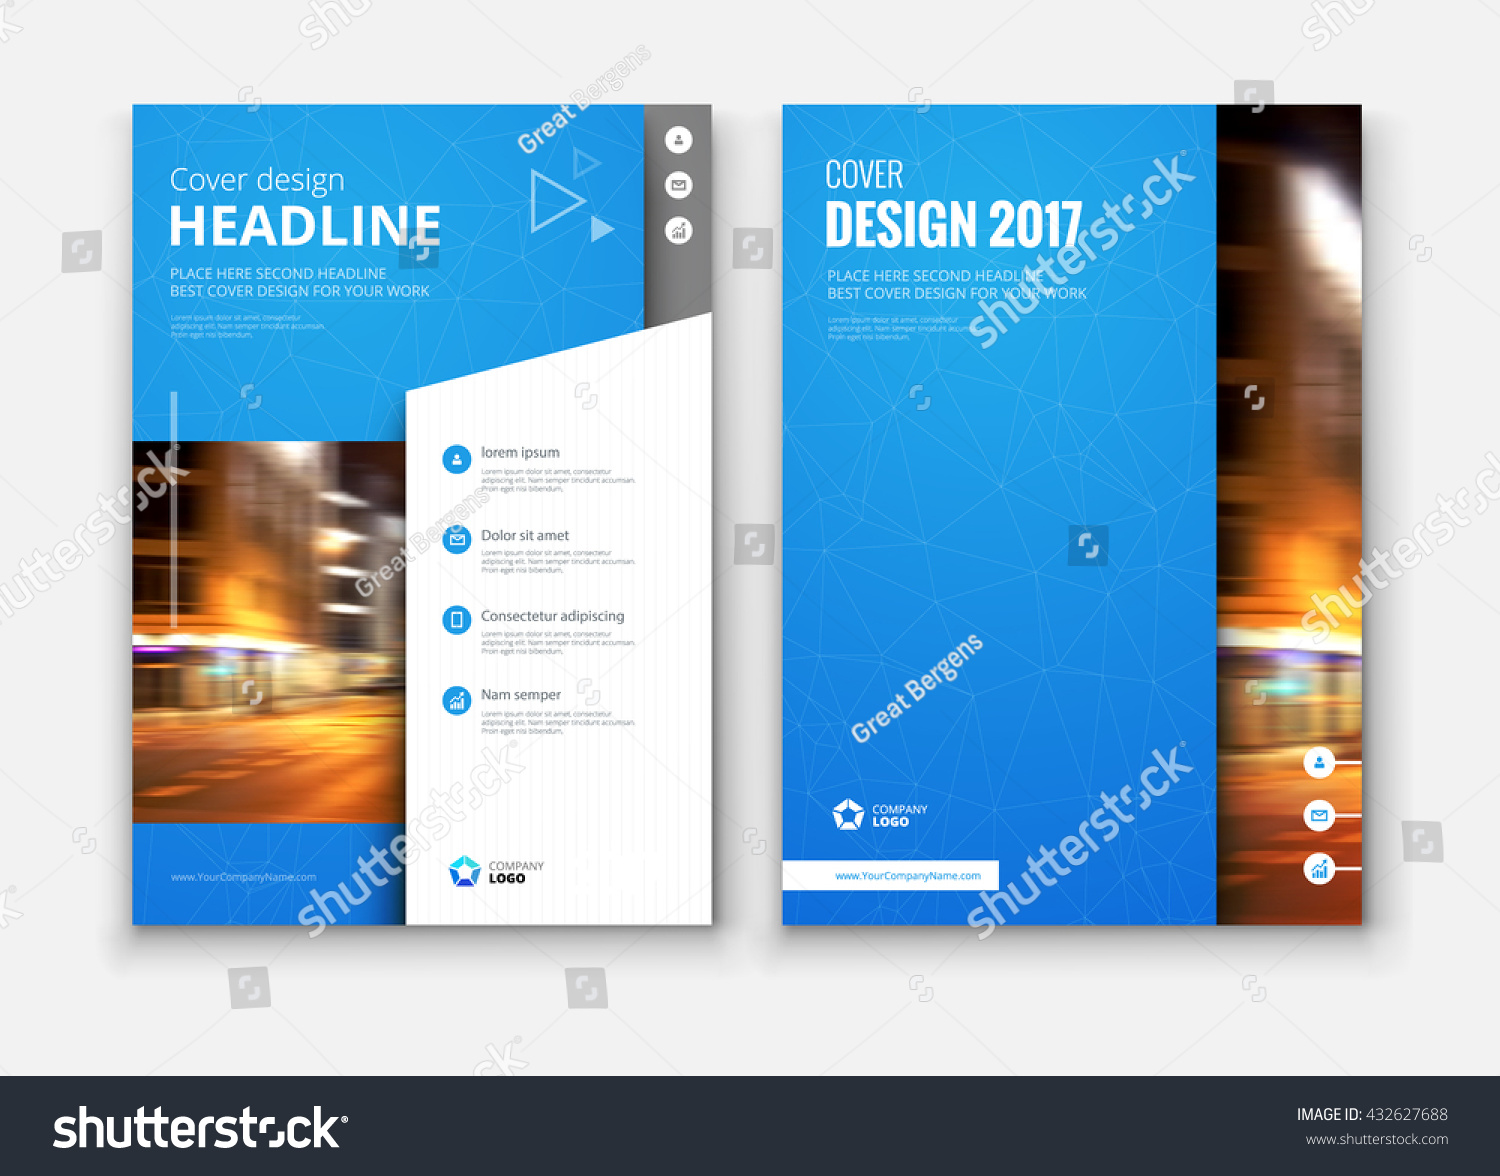 brochure cover design corporate business template stock vector brochure cover design corporate business template for booklet report catalog magazine